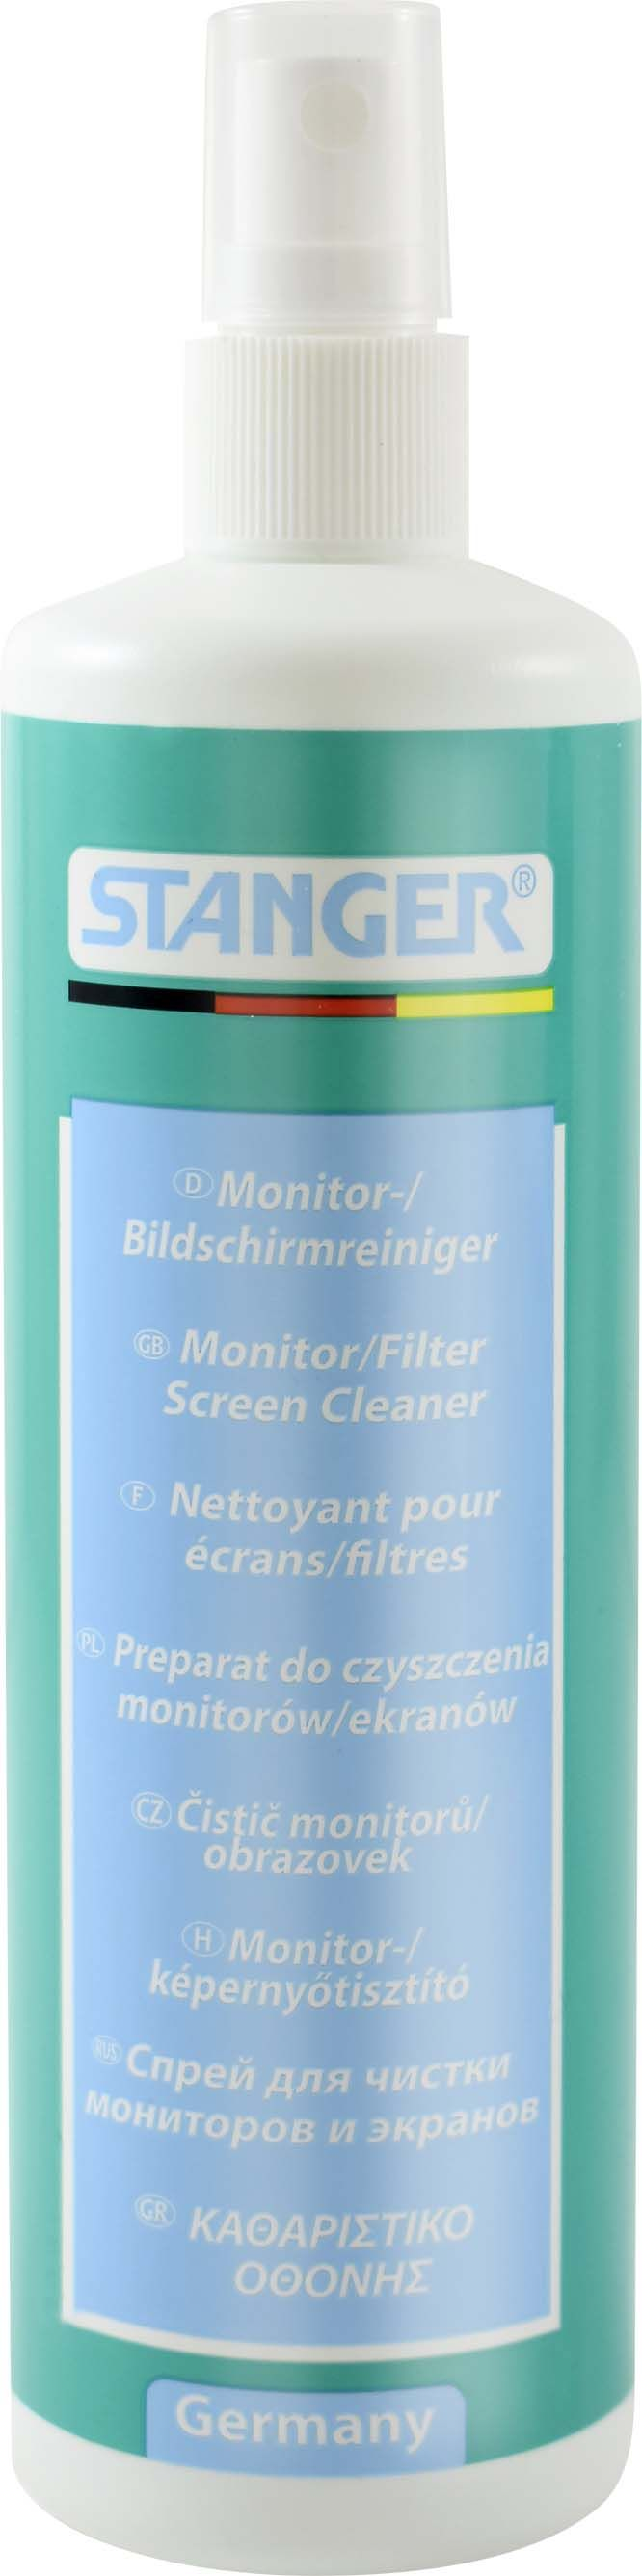 Spray Curatare Monitor Stanger - 250 Ml sanito.ro